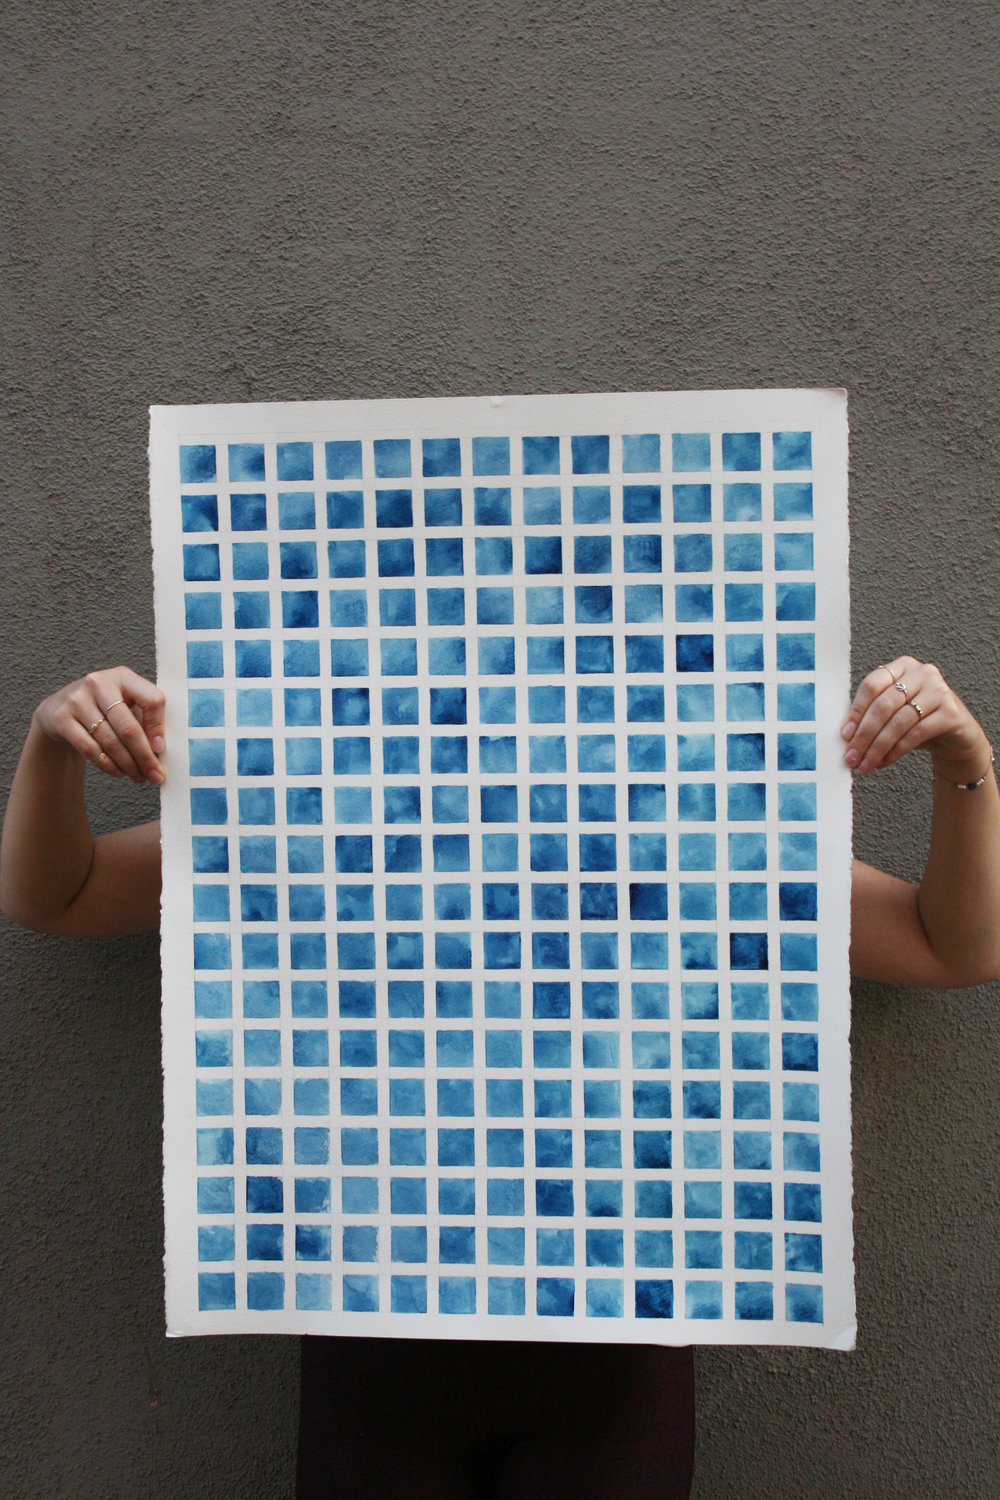 watercolor-geometric-squares-study-prussian-blue-controlled-explorations-elise-lopez